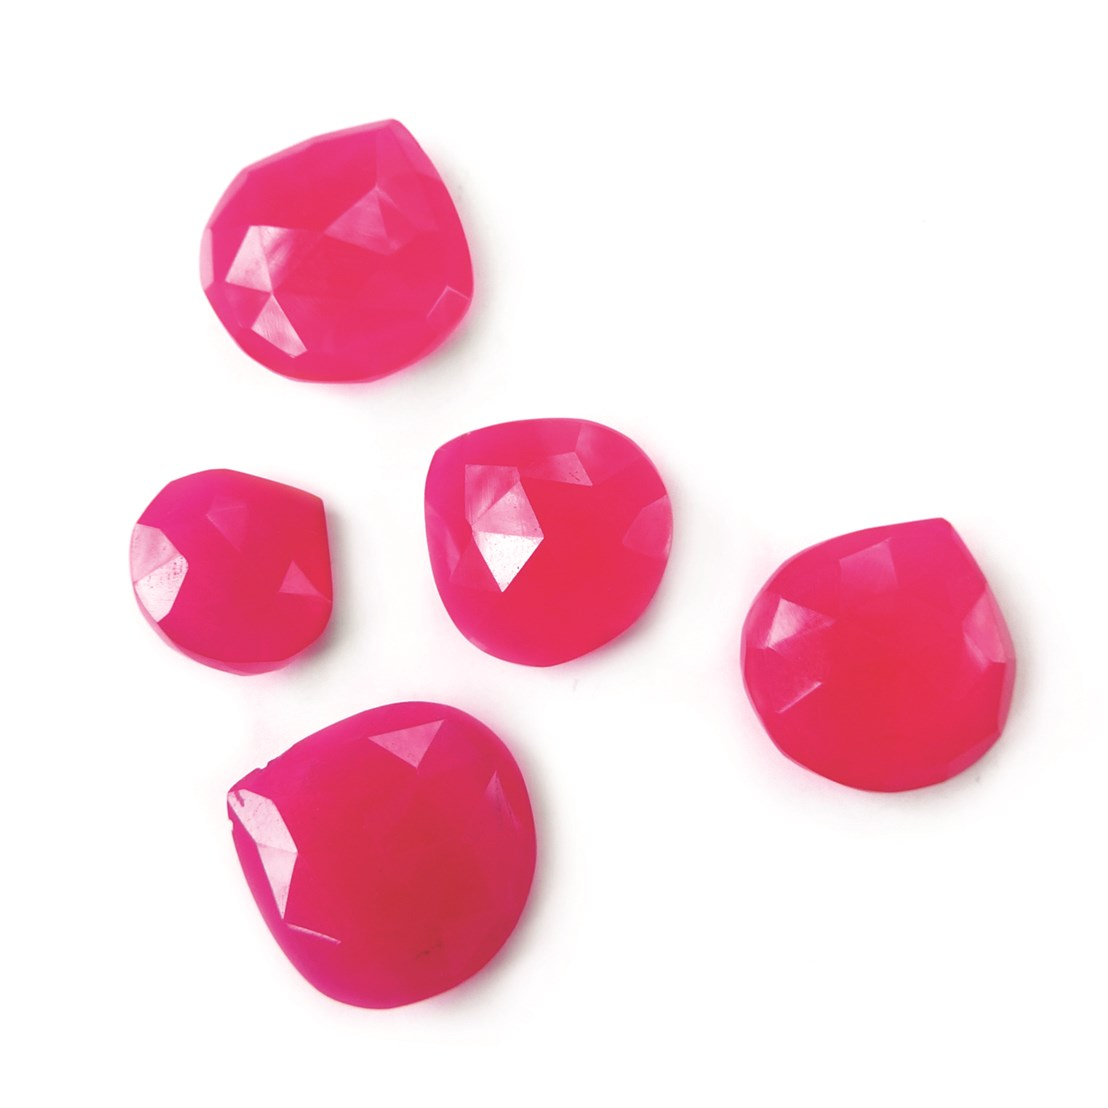 TO-28 AAA Natural Hot Pink Chalcedony Briolette Handmade Faceted Heart Briolette Side Drill Beads 10x10mm 5 Piece Set